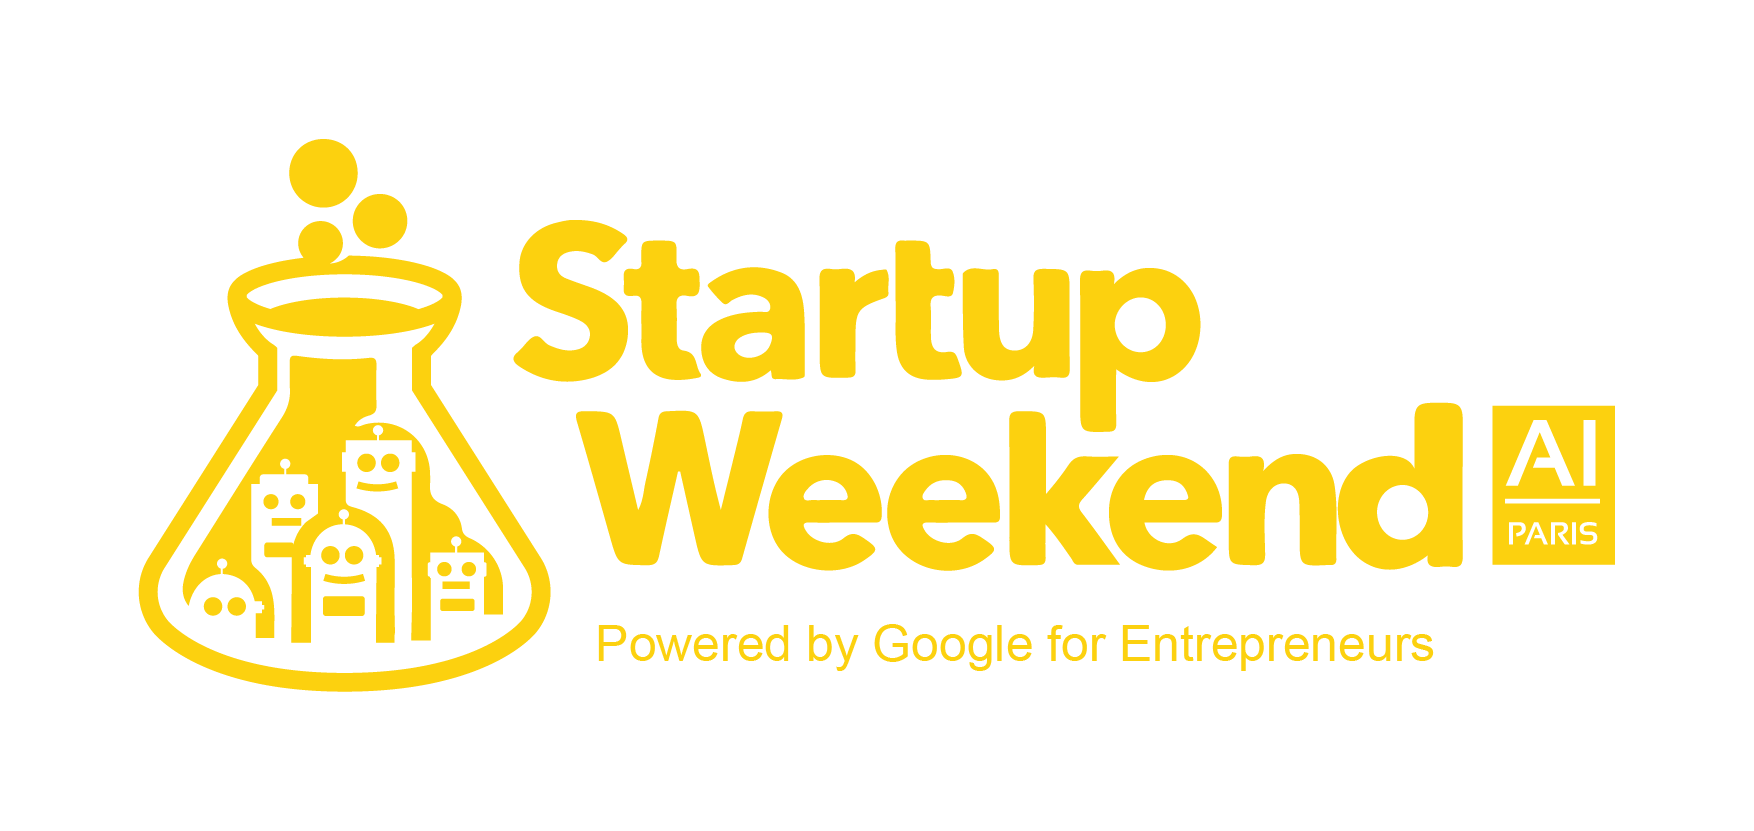 Startup Weekend AI